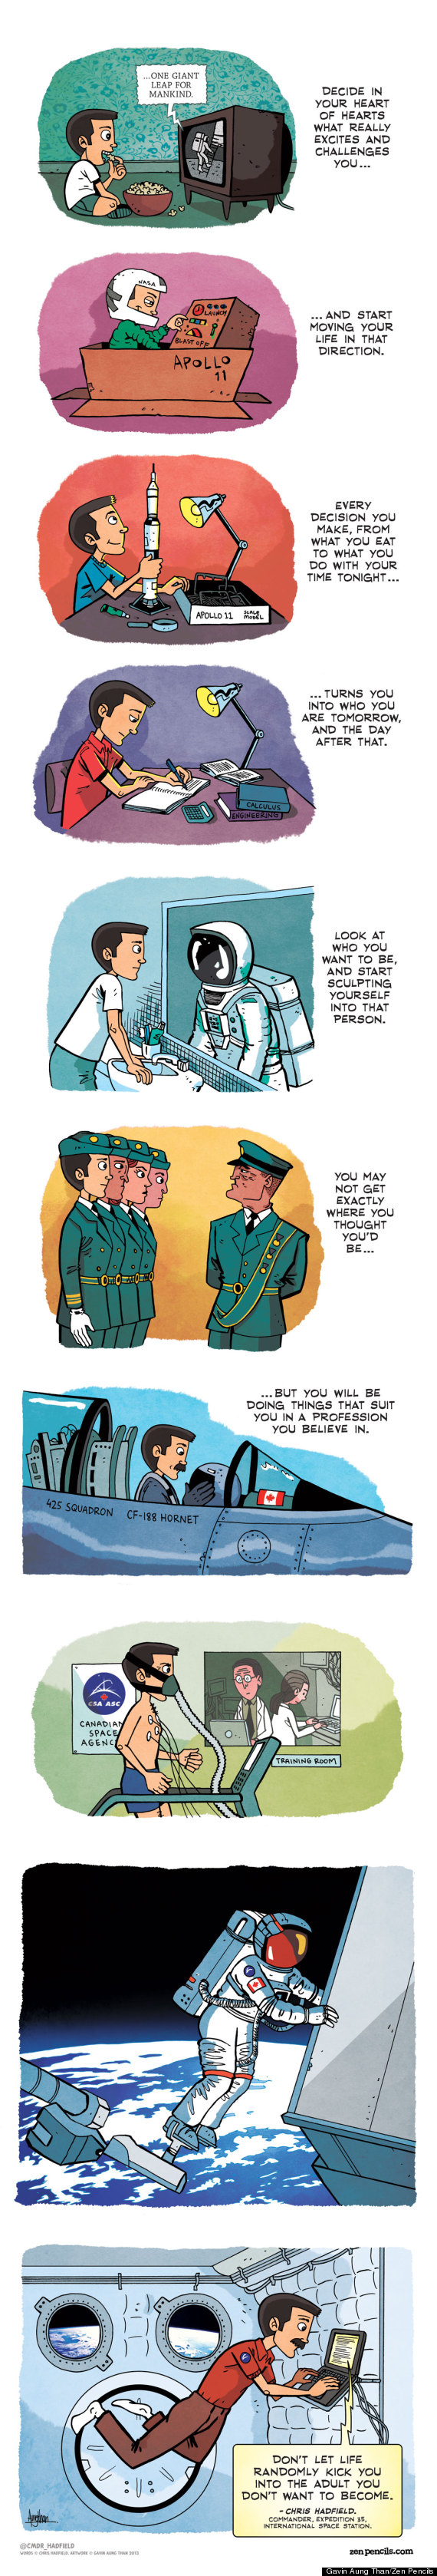 chris hadfield zen pencils